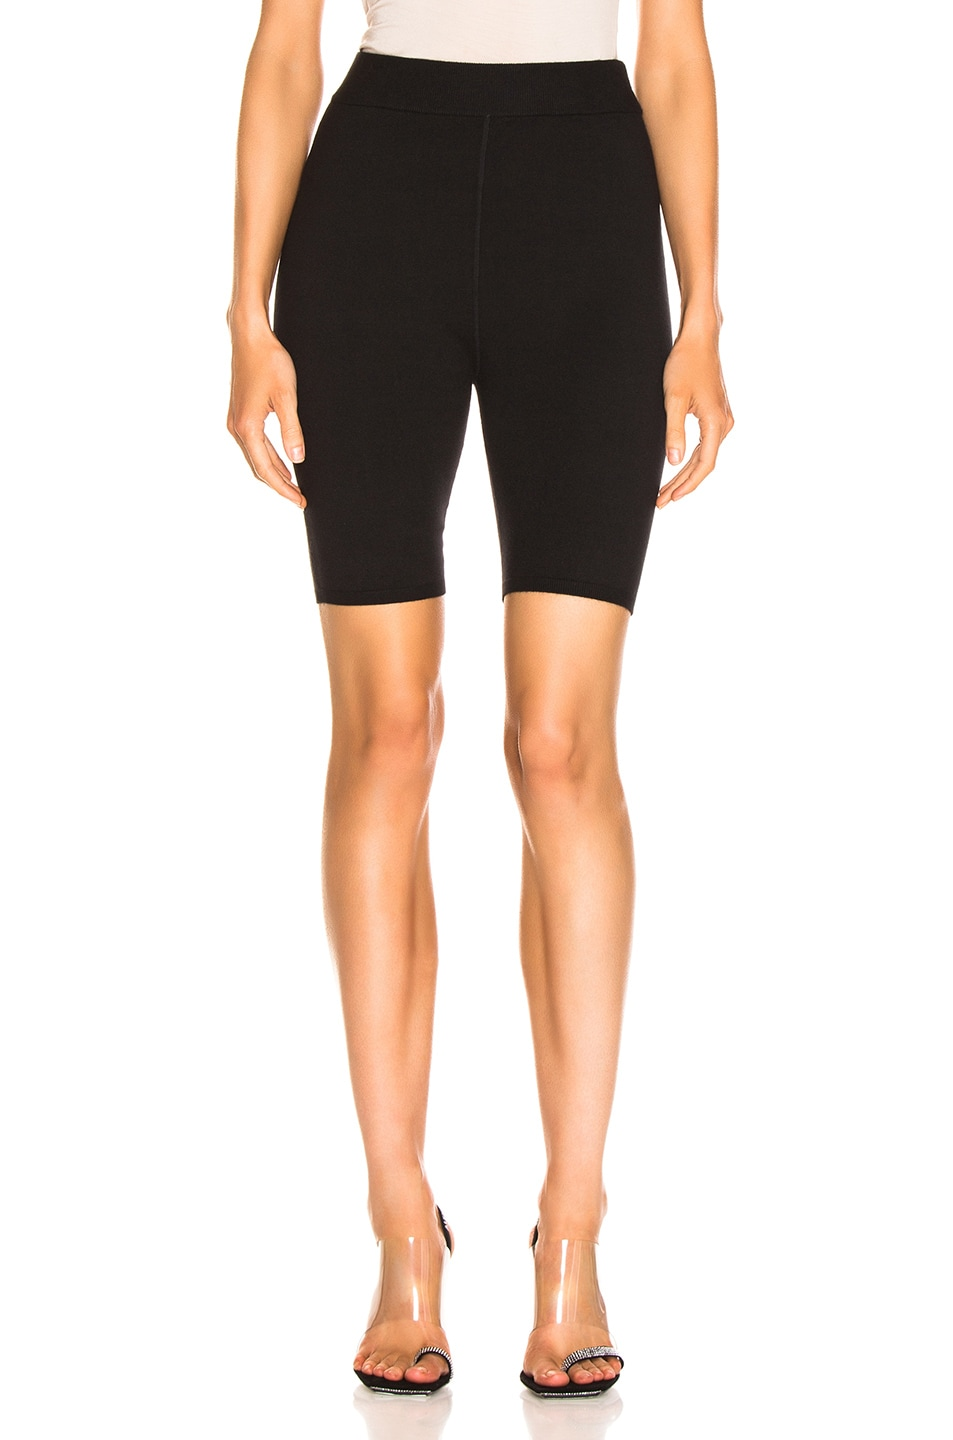 Image 1 of T by Alexander Wang Bodycon Basic Biker Short in Black